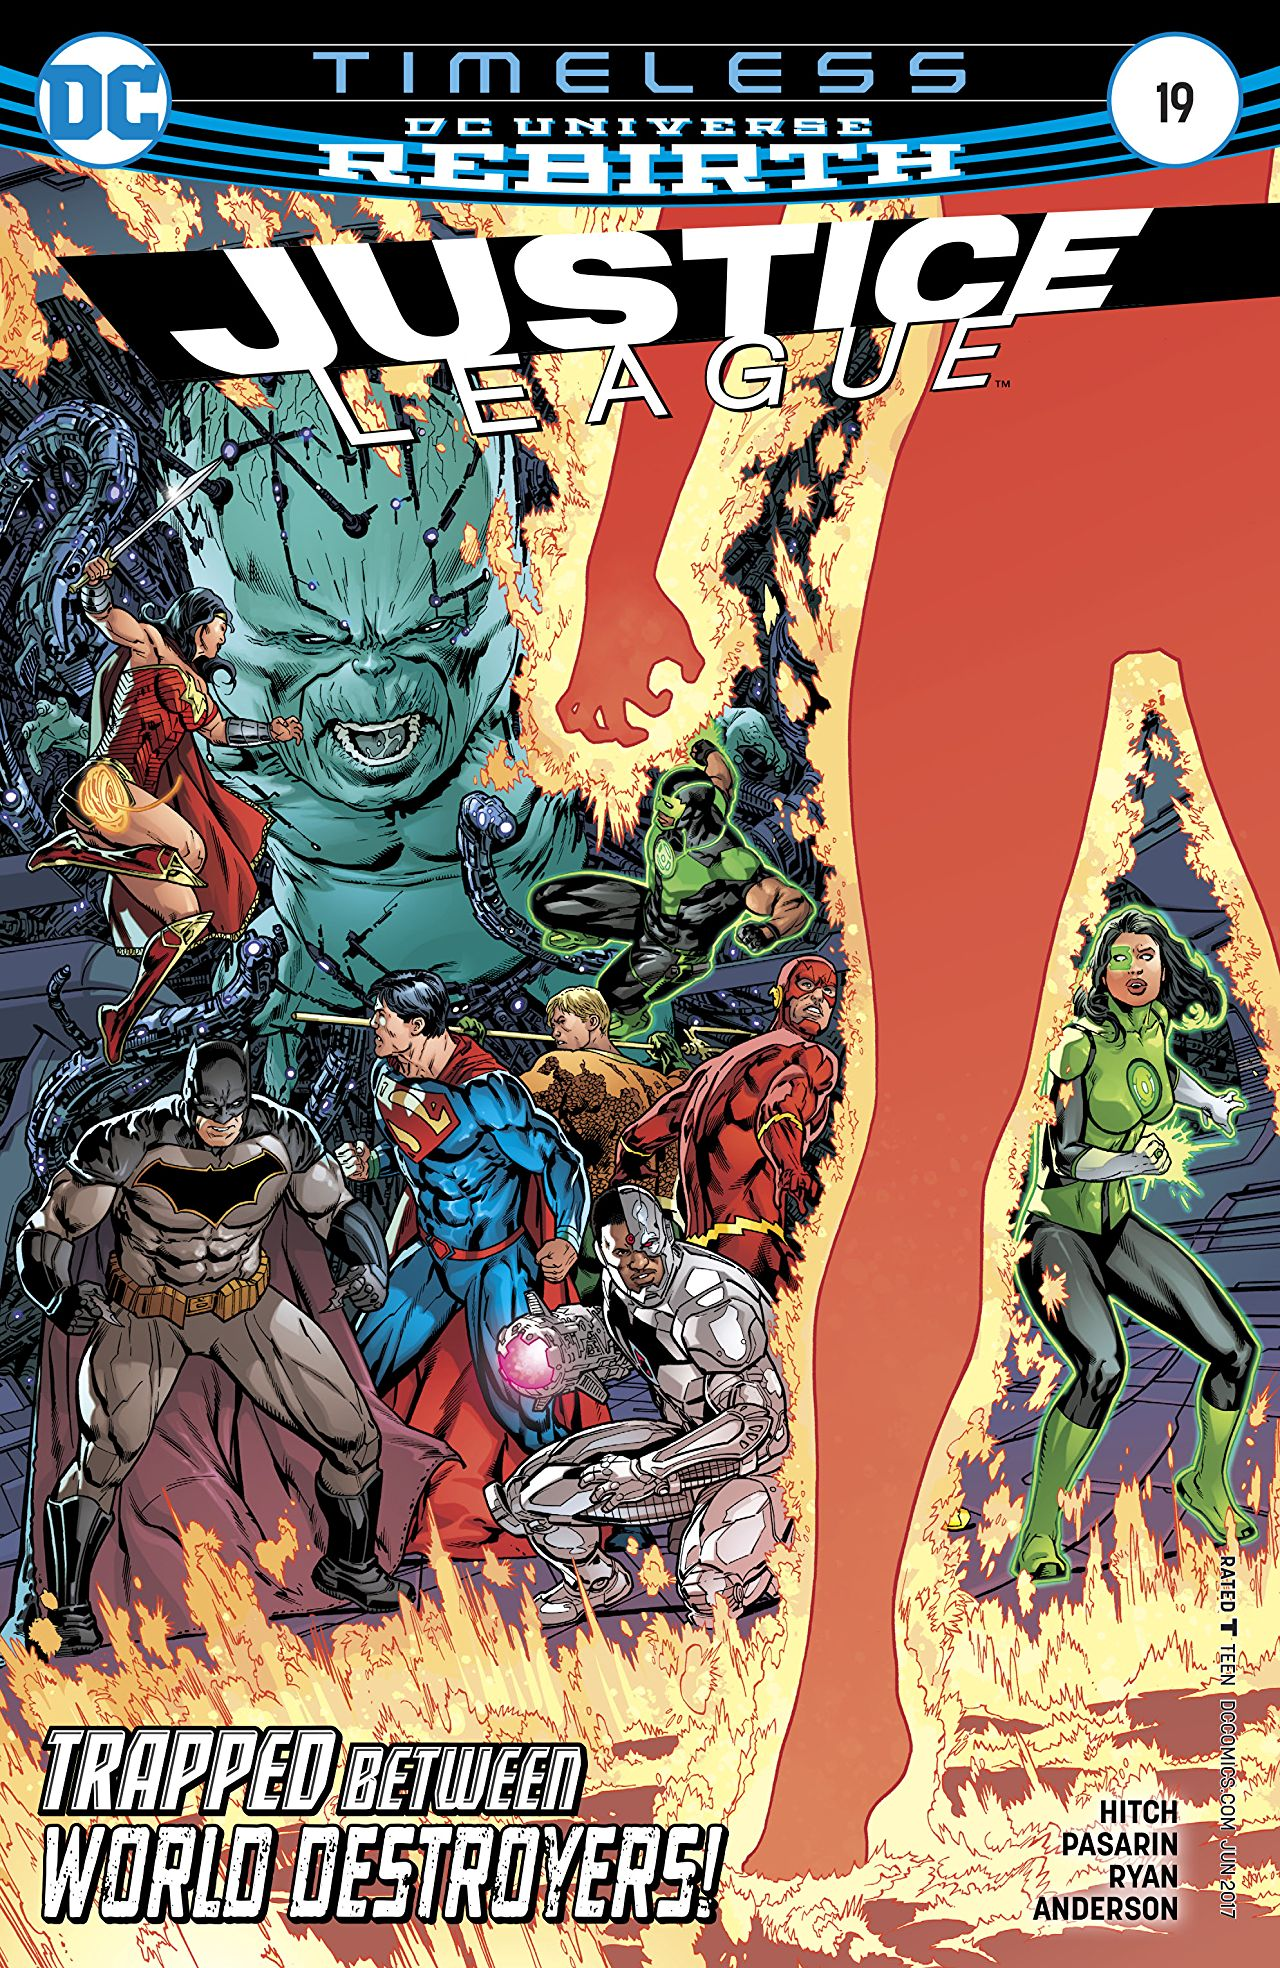 Justice League Vol 3 19